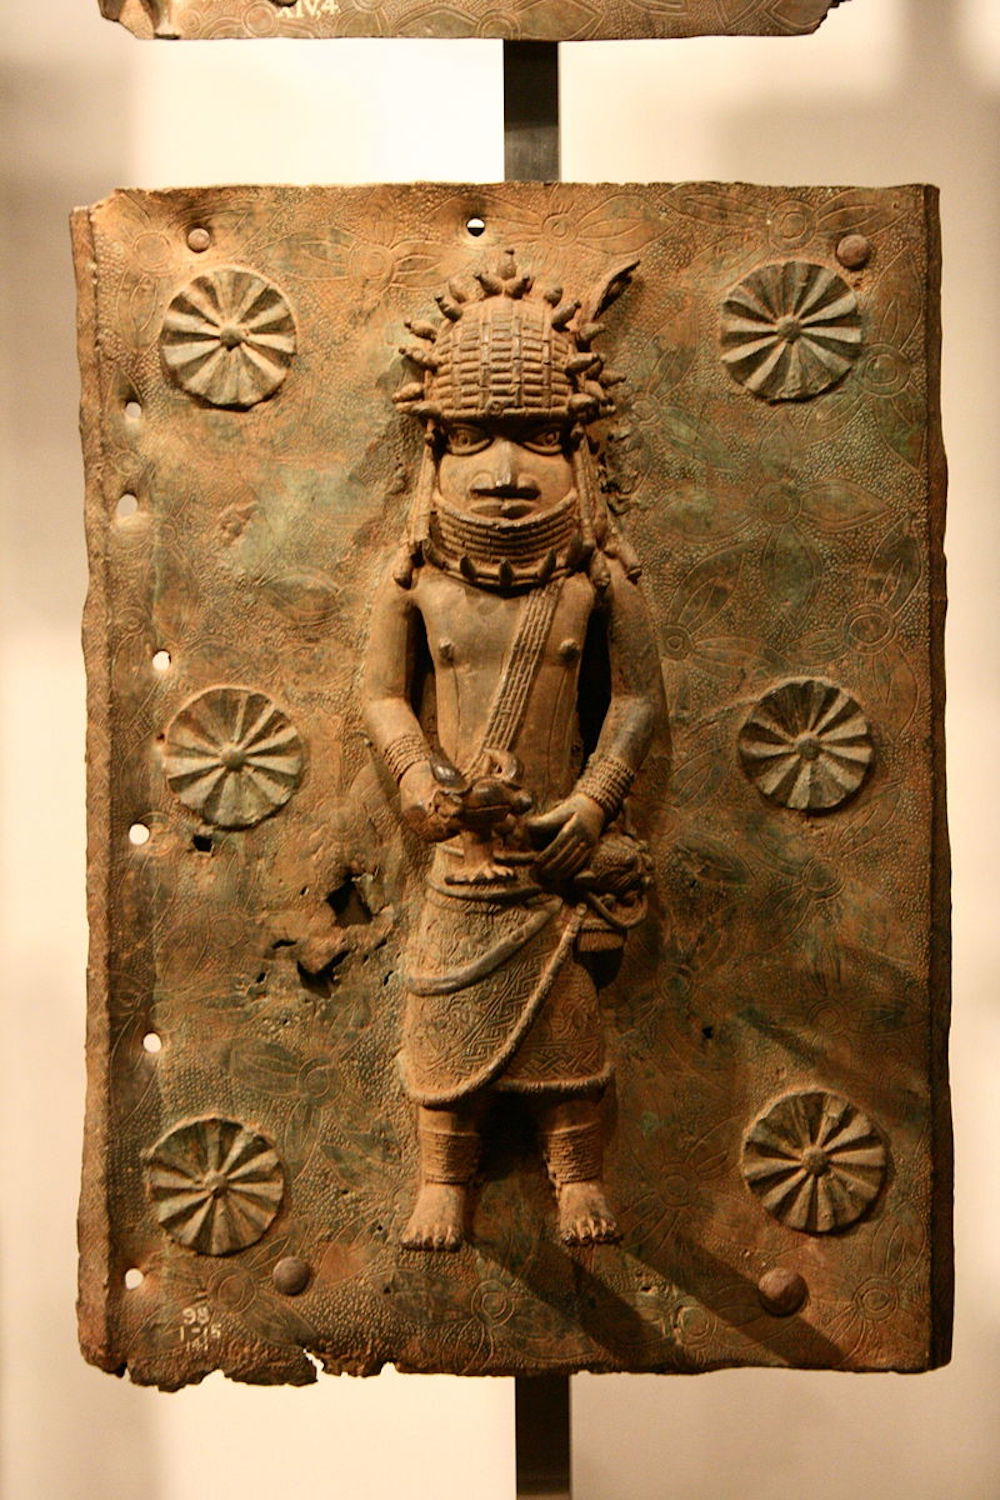 Benin brass plaque at the British Museum. Photo Credit: © Michel Wal via Wikimedia Commons.